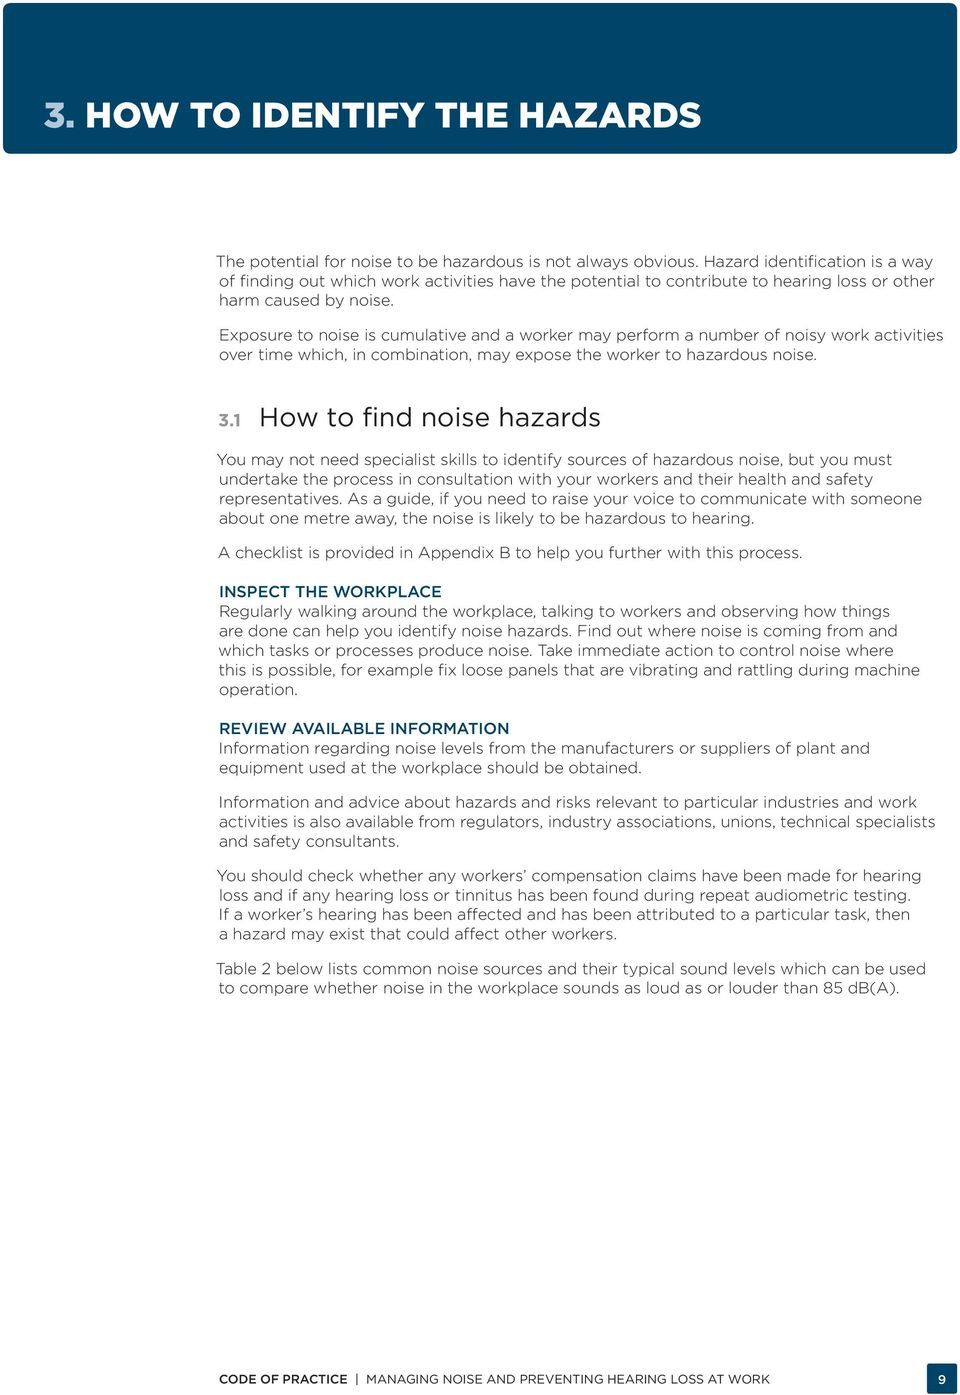 MANAGING NOISE AND PREVENTING HEARING LOSS AT WORK - PDF